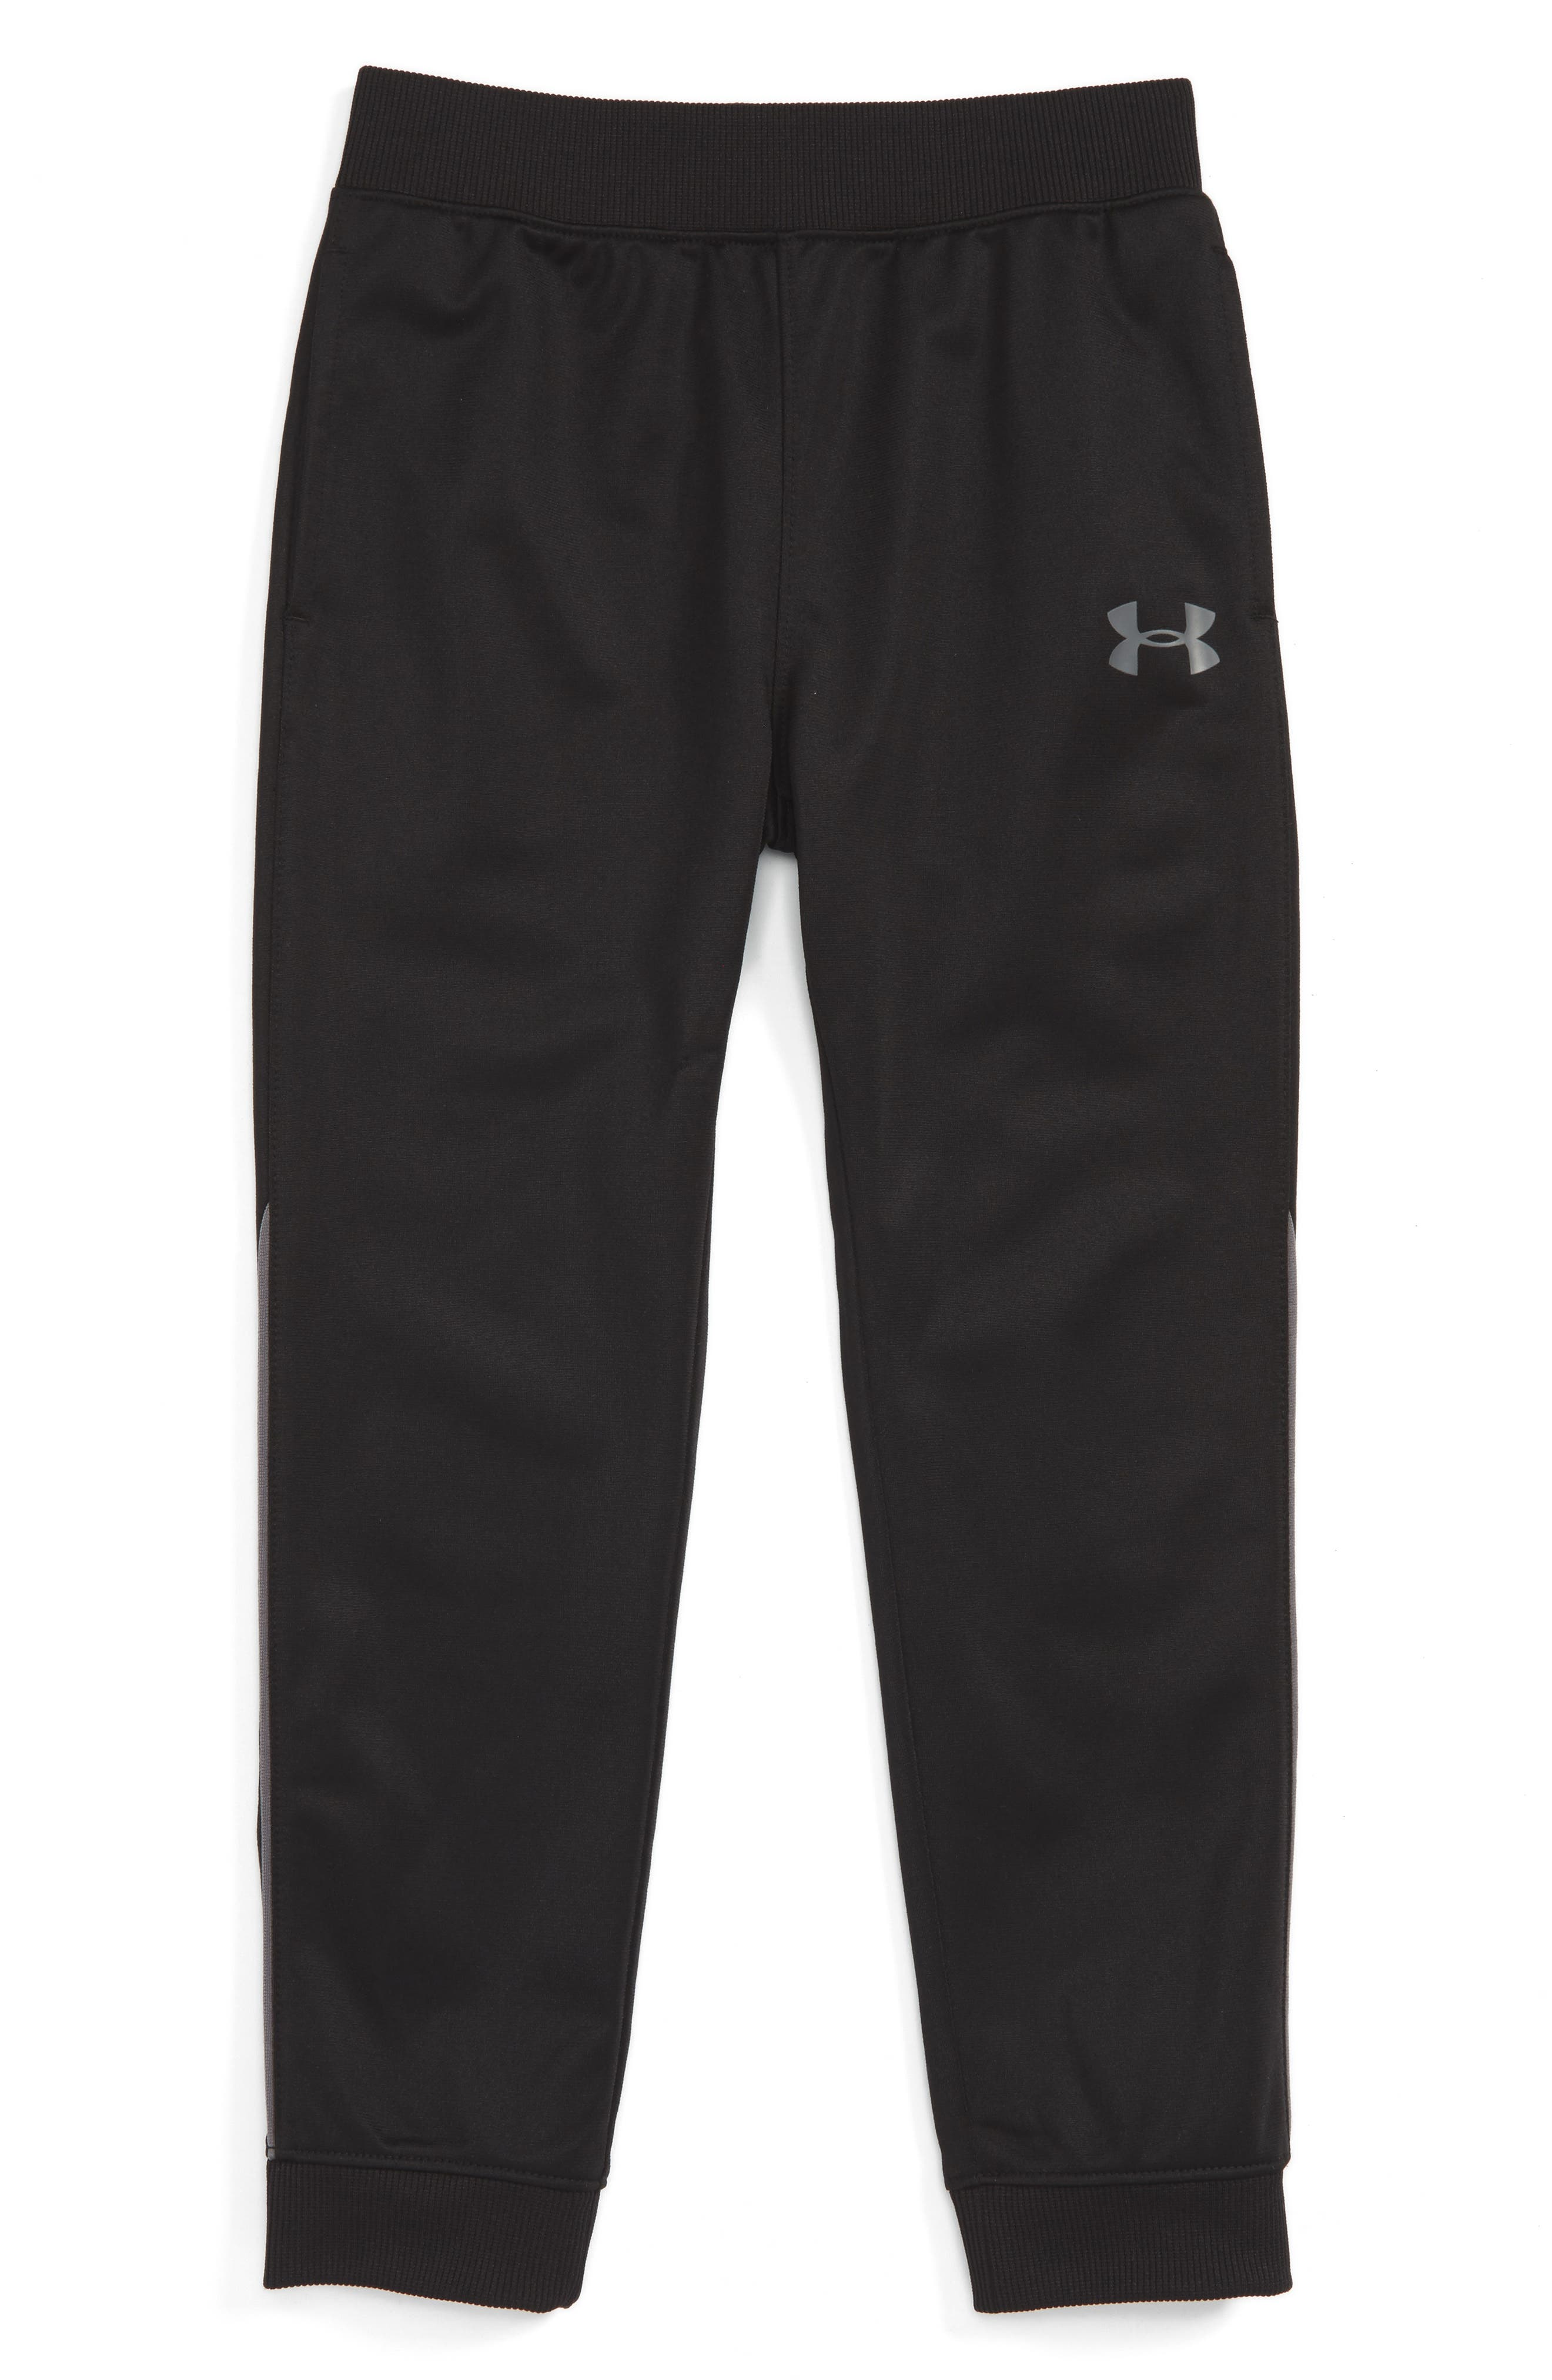 Alternate Image 1 Selected - Under Armour Pennant Sweatpants (Toddler Boys & Little Boys)